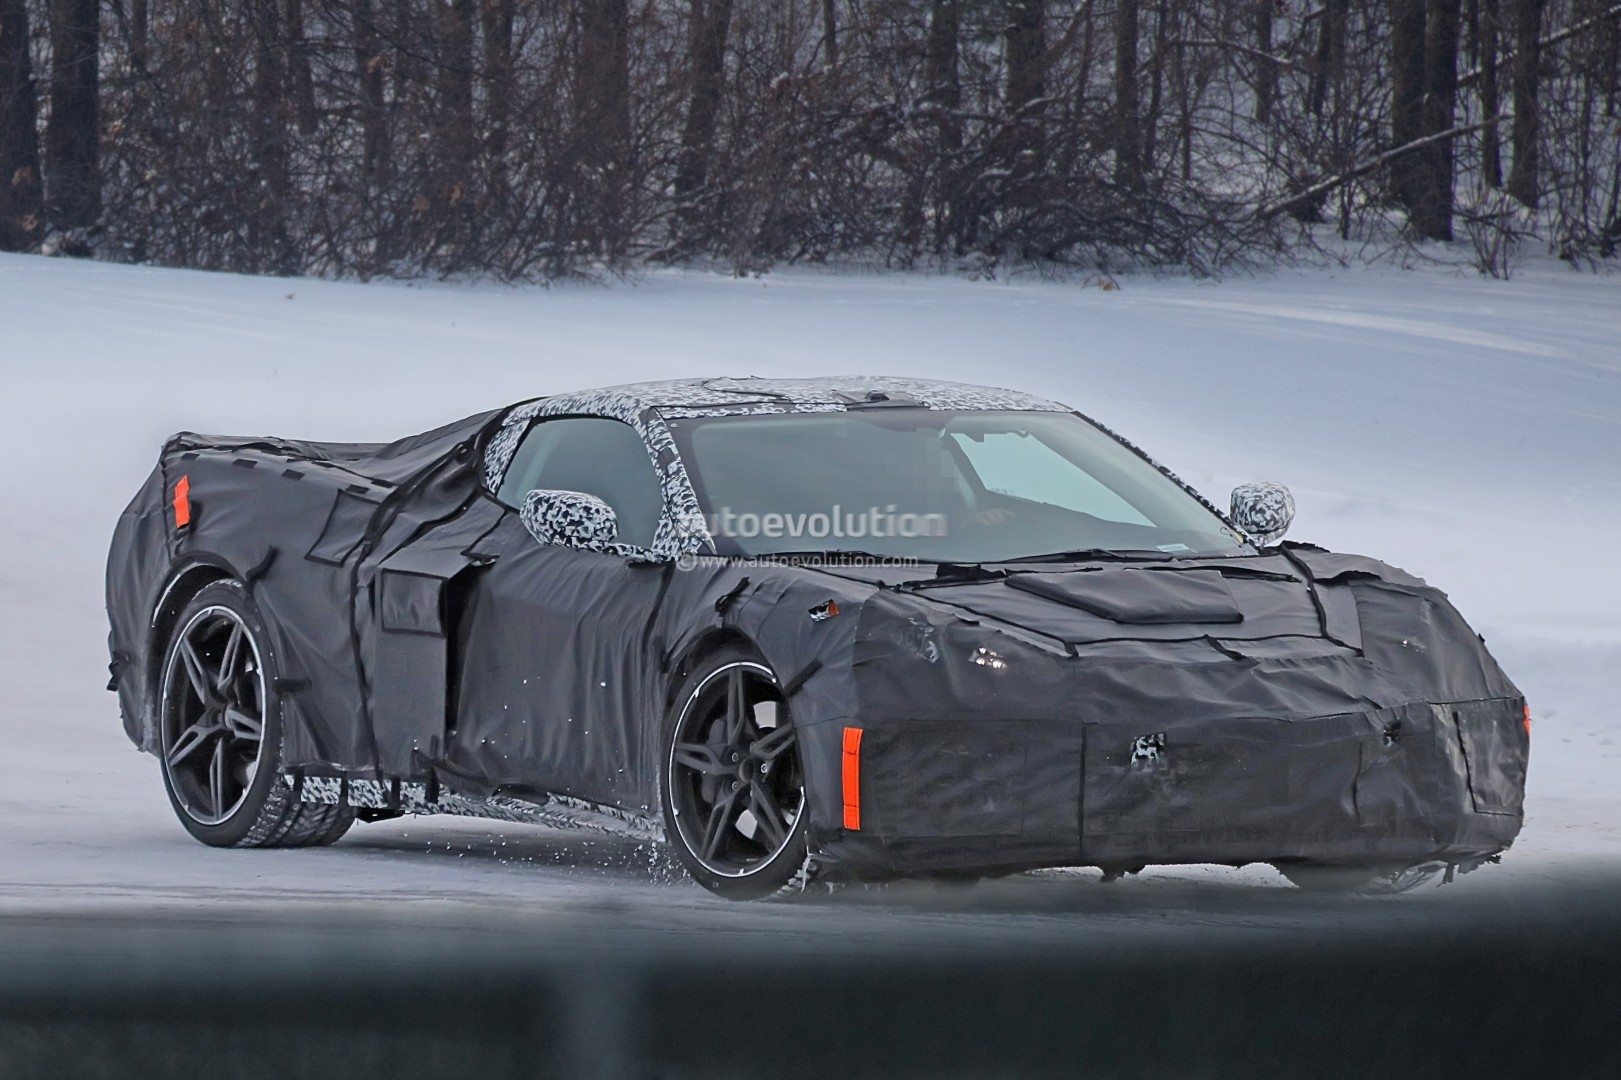 Spyshots Mid Engined C8 Corvette Prototype Shows Flying